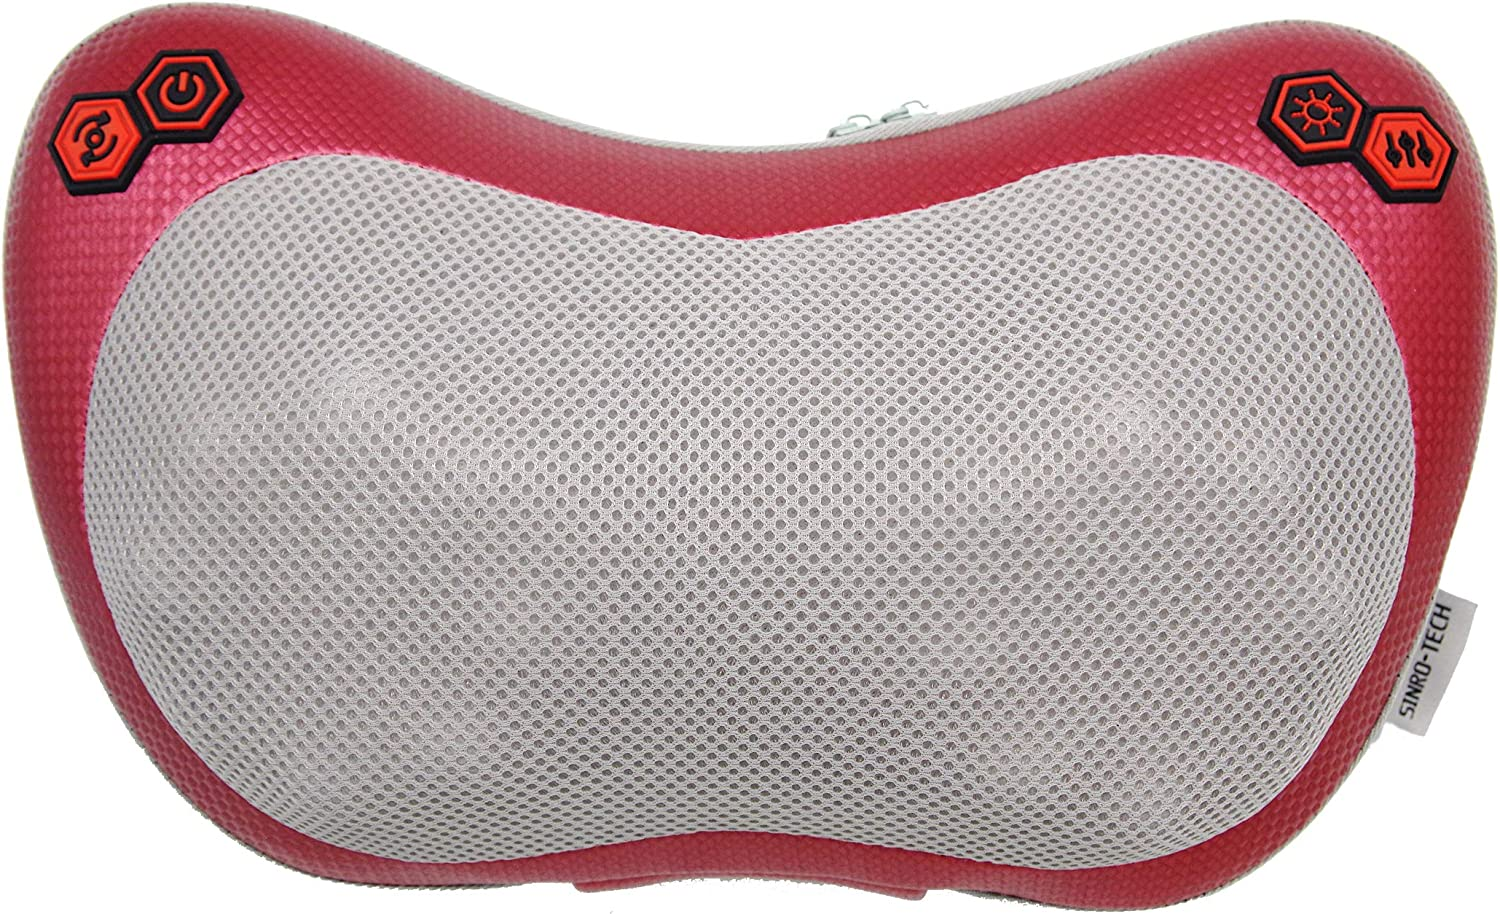 Father`s Day Gifts,Shiatsu Back and Neck Massage Pillow with Heat,Kneading Massager with 16 Rollers nodes for Shoulders,Legs,Feet,Hands,Use at Home,Office,Chair and Car.